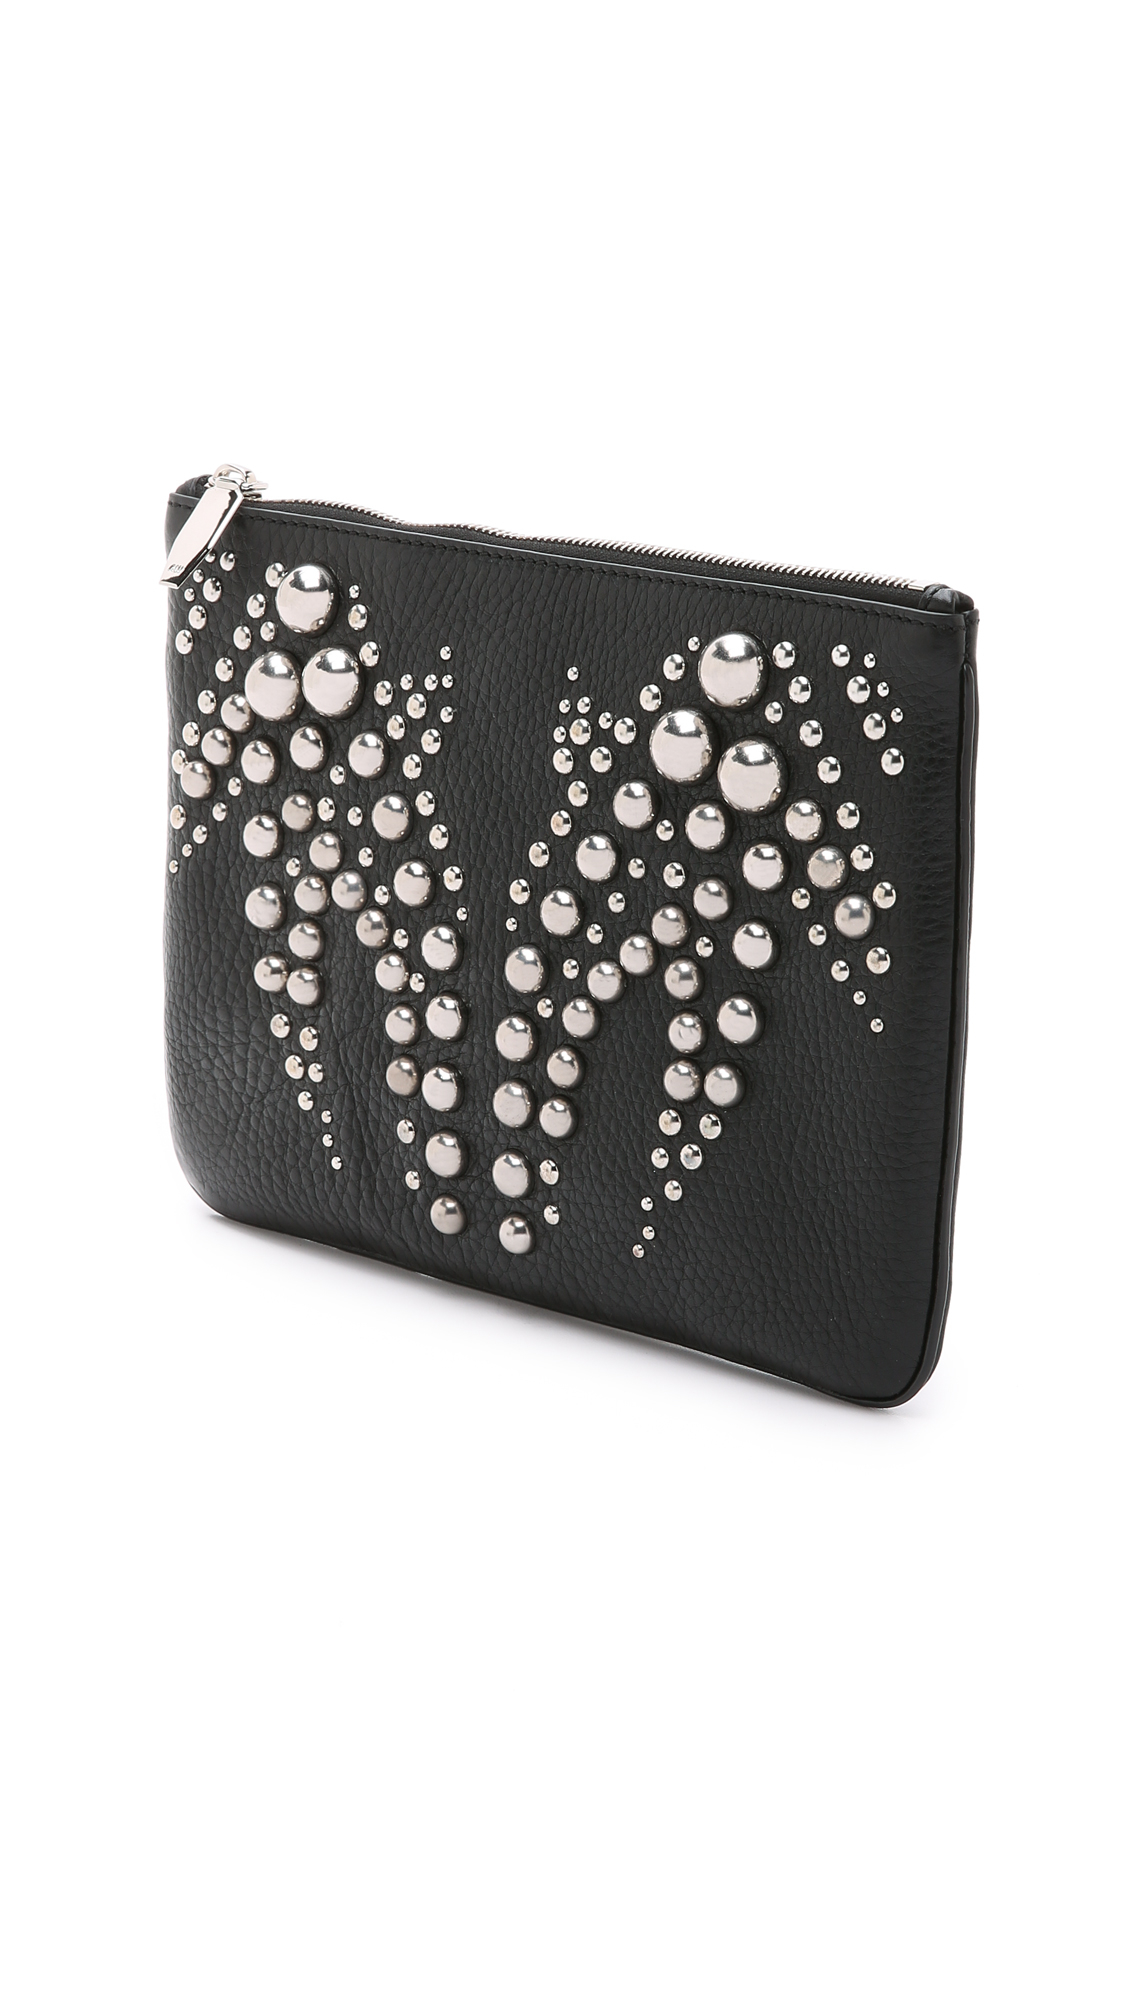 studded clutch bag - Black Alexander Wang 6X00iR